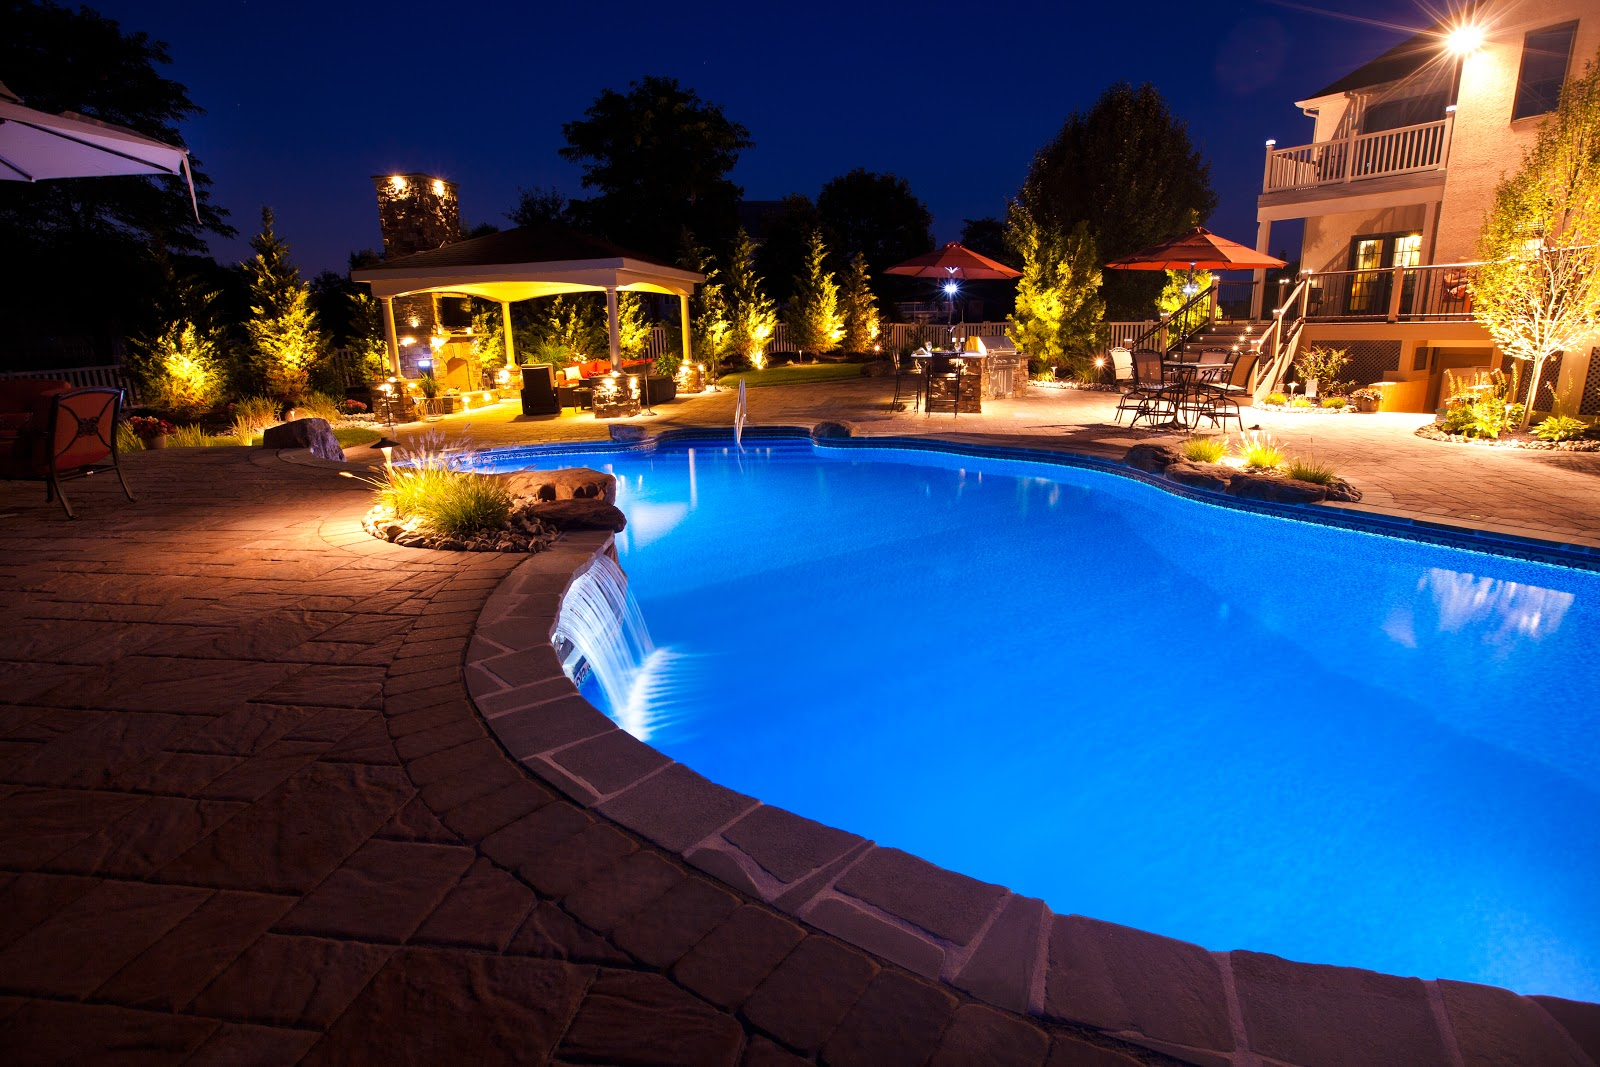 Home backyard at night featuring a custom inground pool and other outdoor living elements.